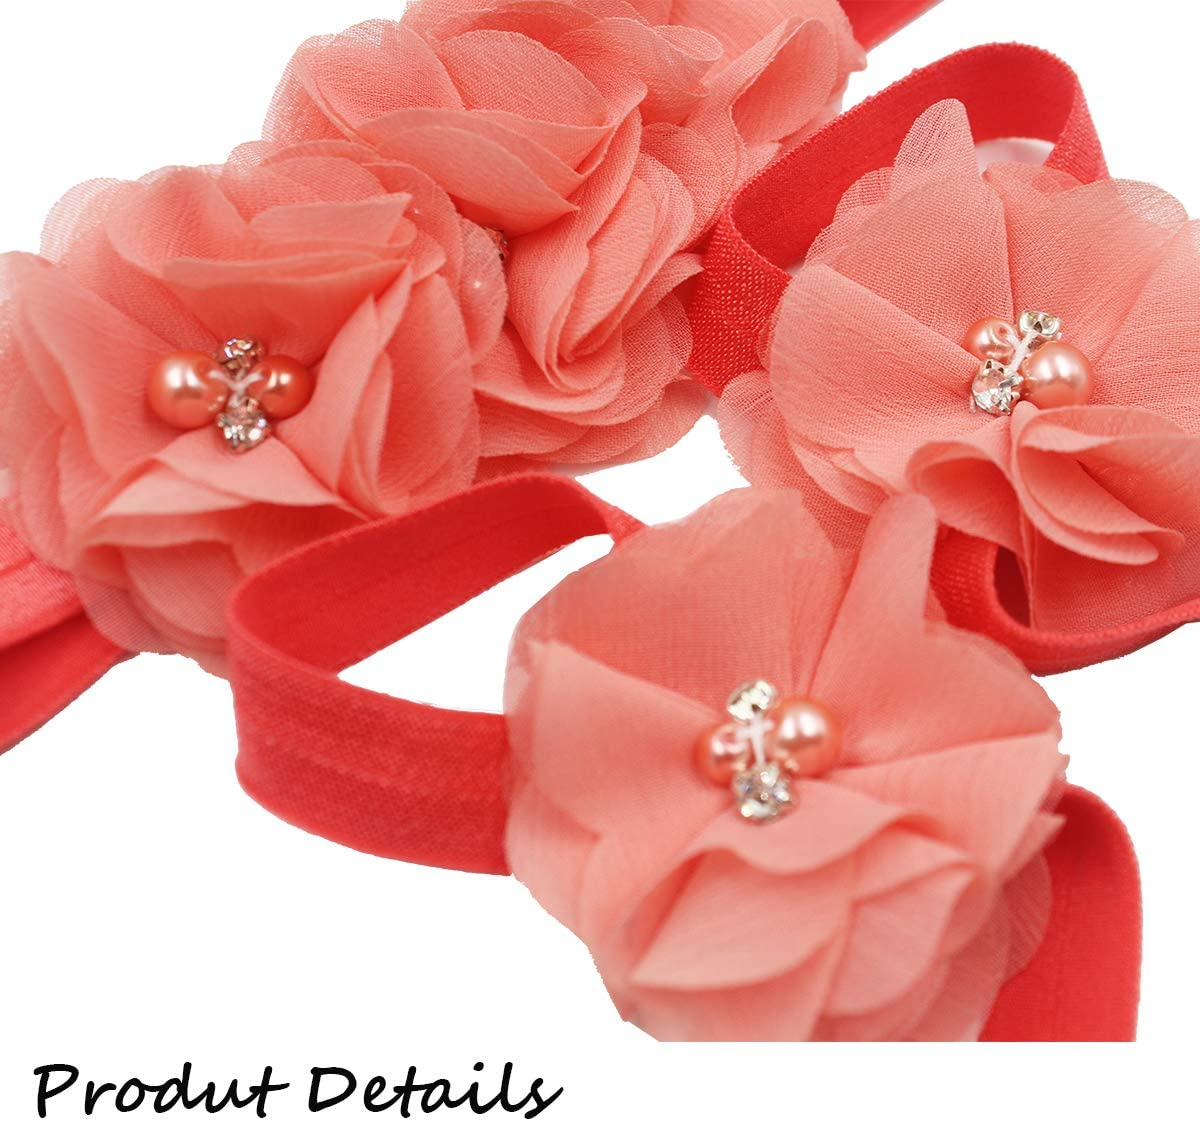 Packed with 6 set Baby Girls Beautiful Flower Headbands and Baby Barefoot Sandals Flower set from CellElection